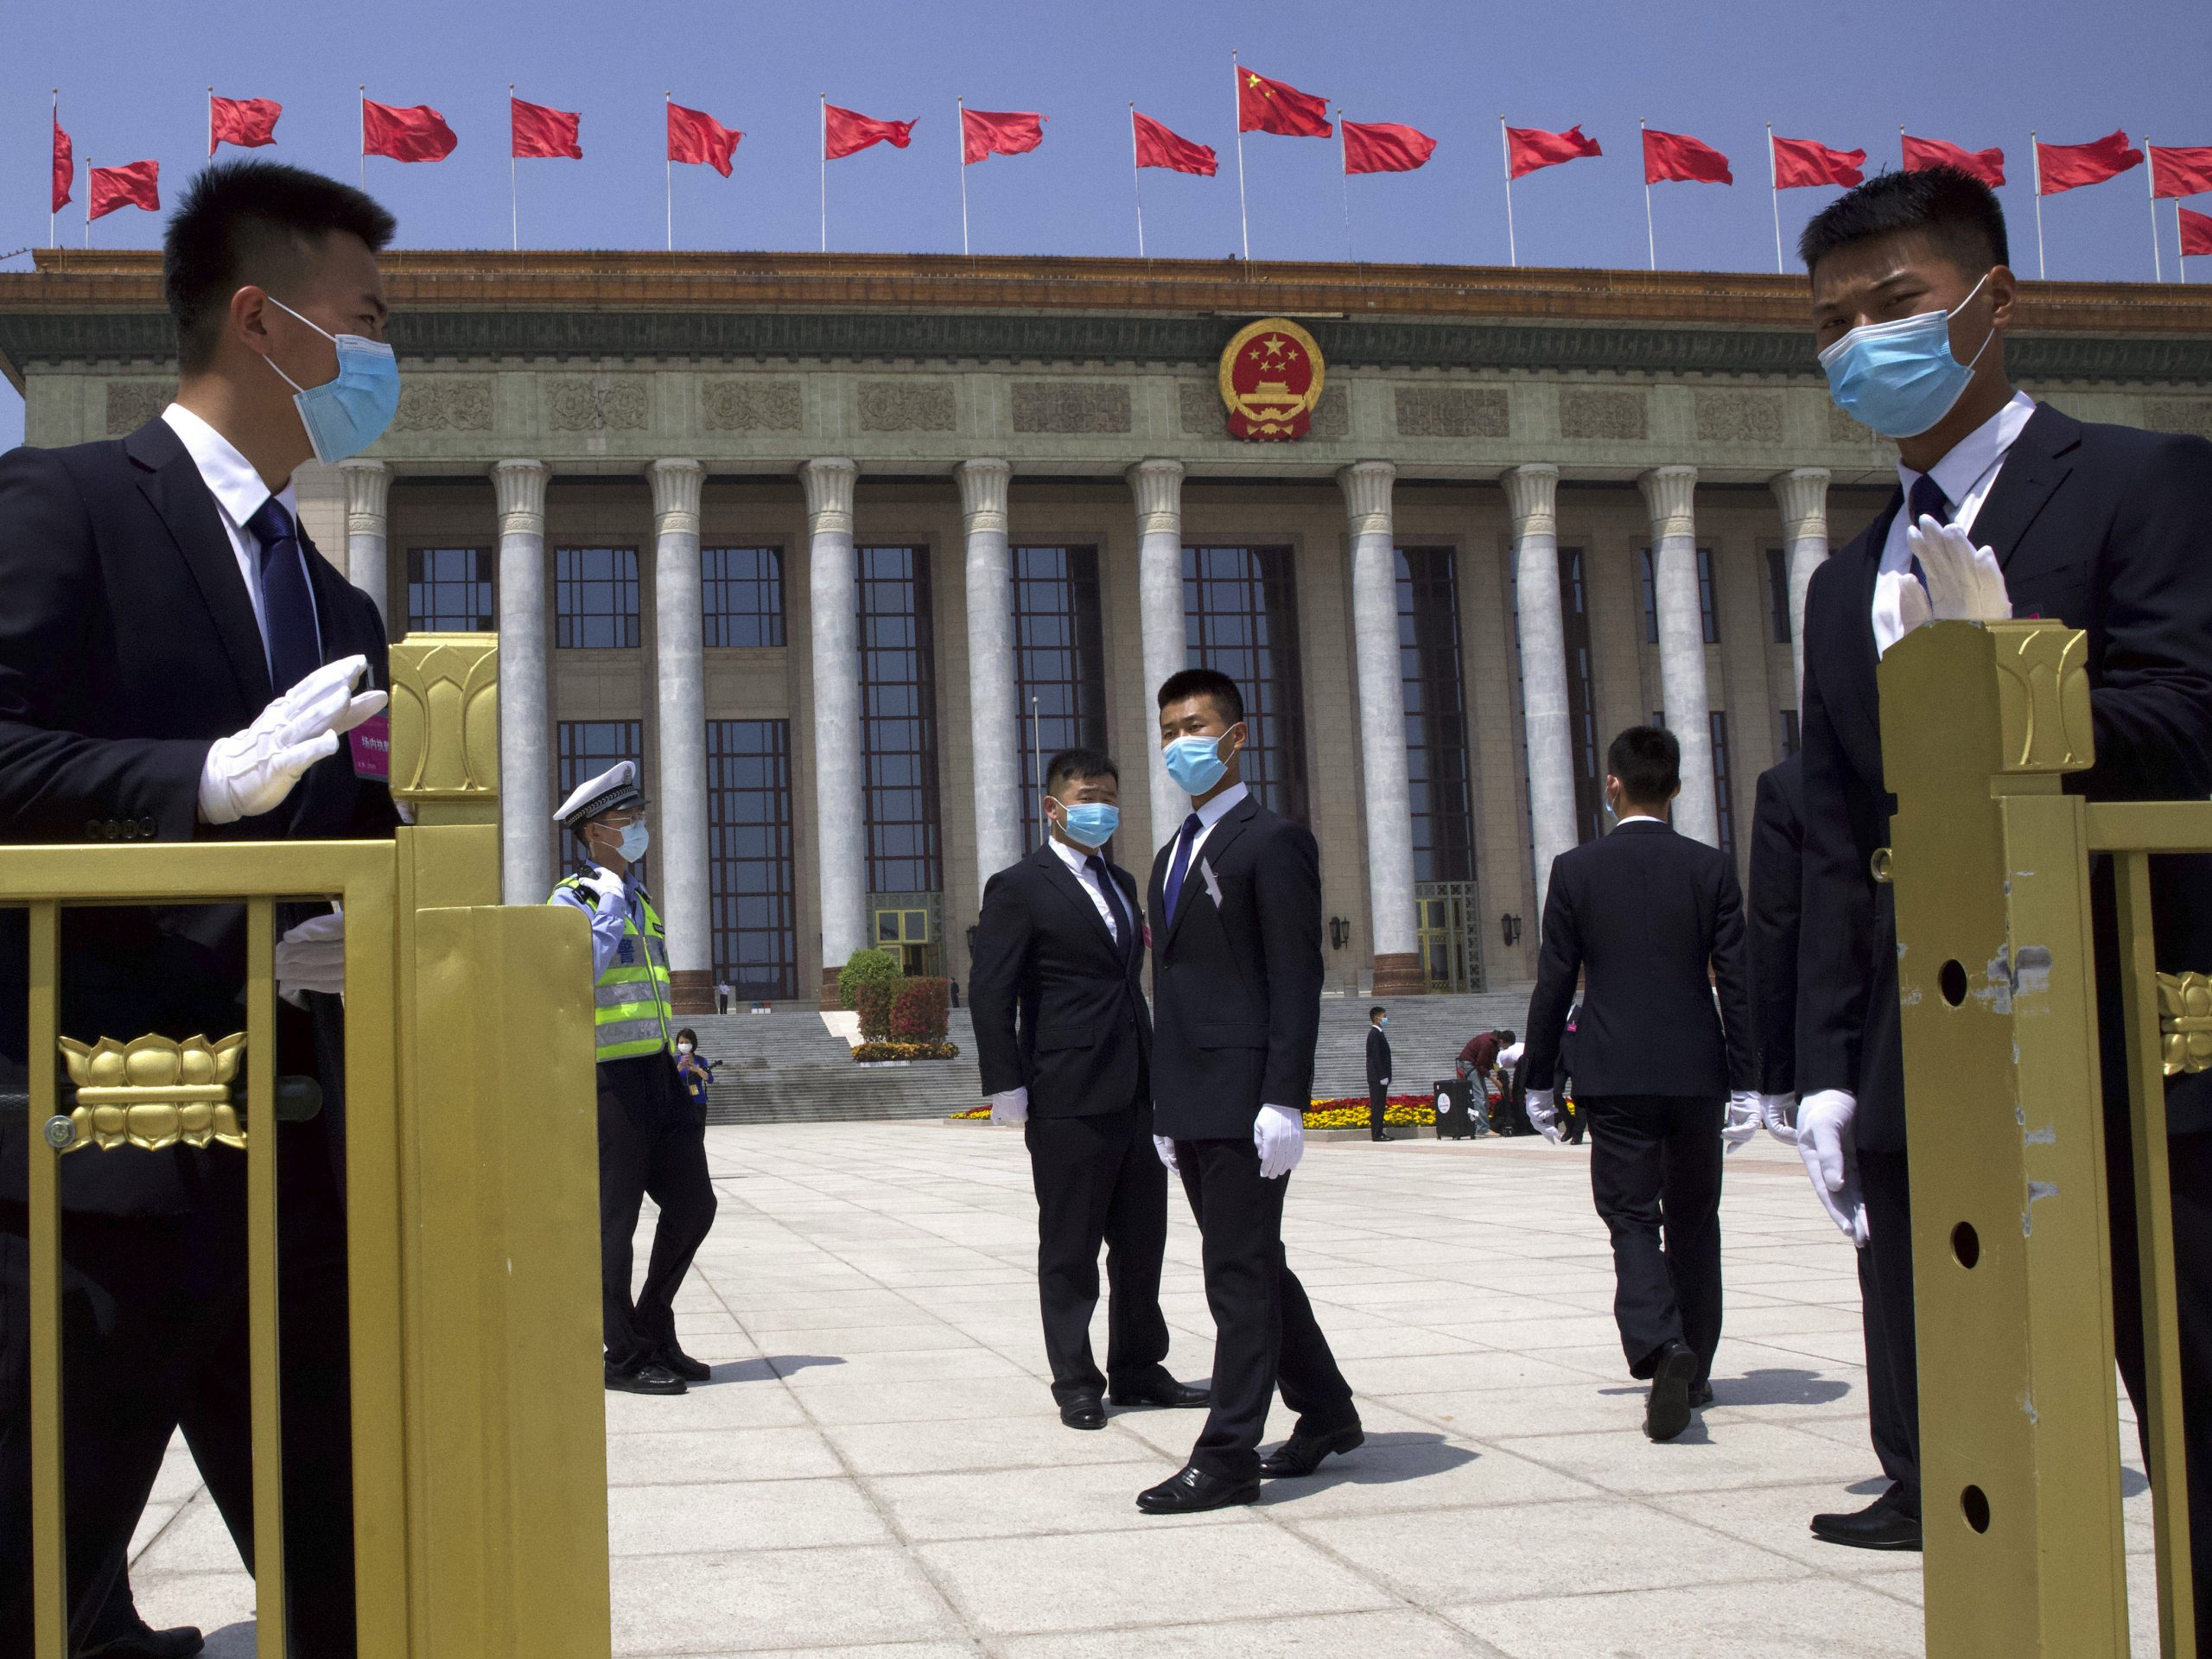 Chinese security officials wear face masks to protect against the new coronavirus as they stand guard outside the Great Hall of the People after the opening session of China's National People's Congress (NPC) in Beijing.